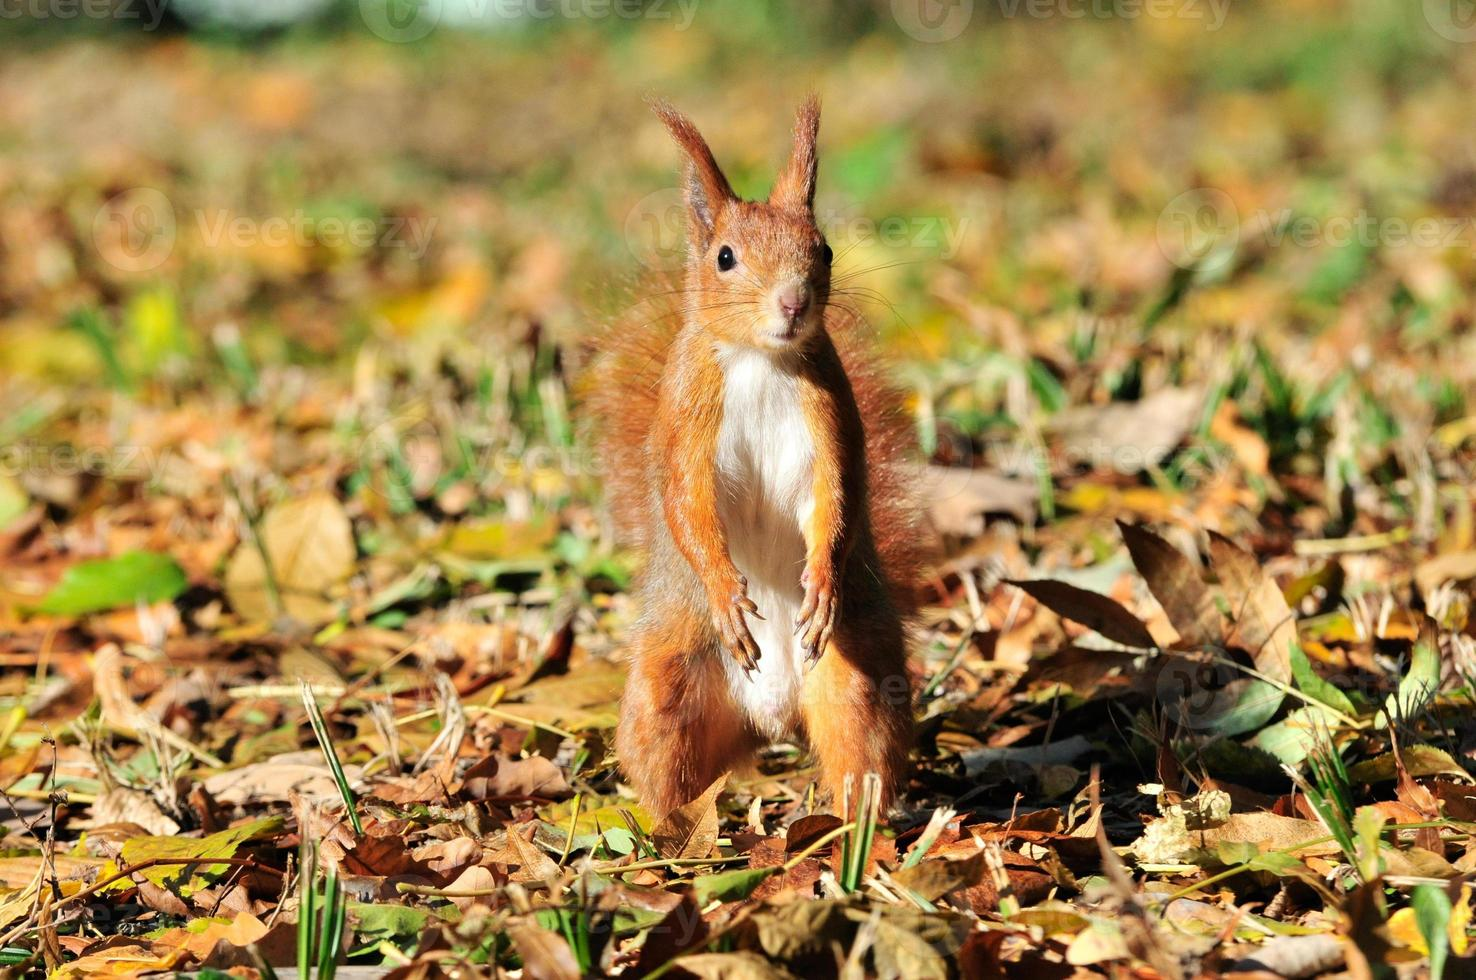 Squirrel - a rodent of the squirrel family. photo